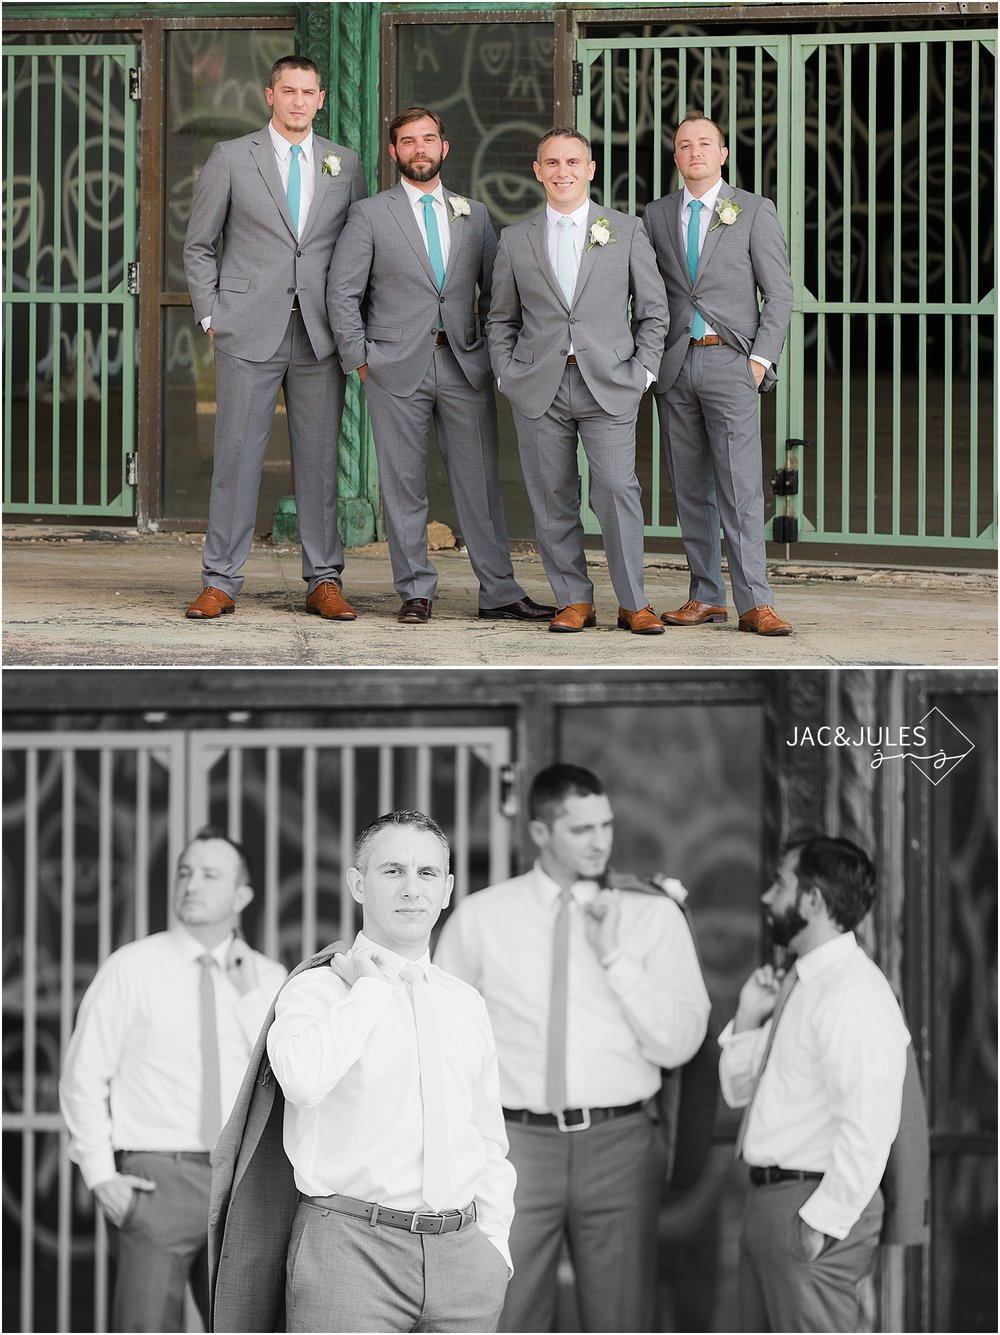 jacnjules photographs groomsman in gray suits in Asbury Park, NJ